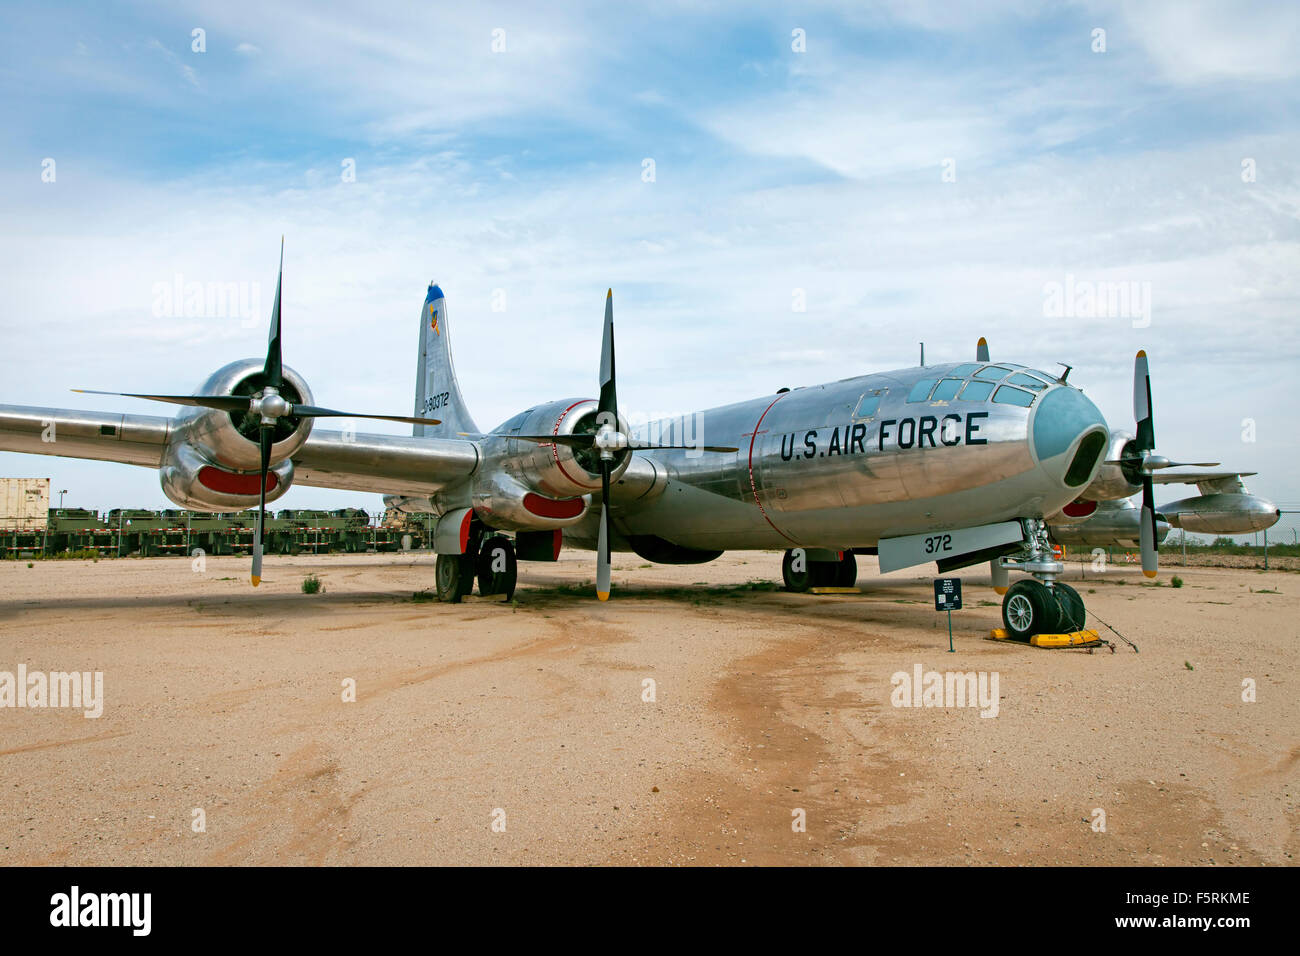 Boeing KB-50J Superfortress on display at Pima Air Museum in Tucson, Arizona. The KB-50 was used as an aerial refueling - Stock Image